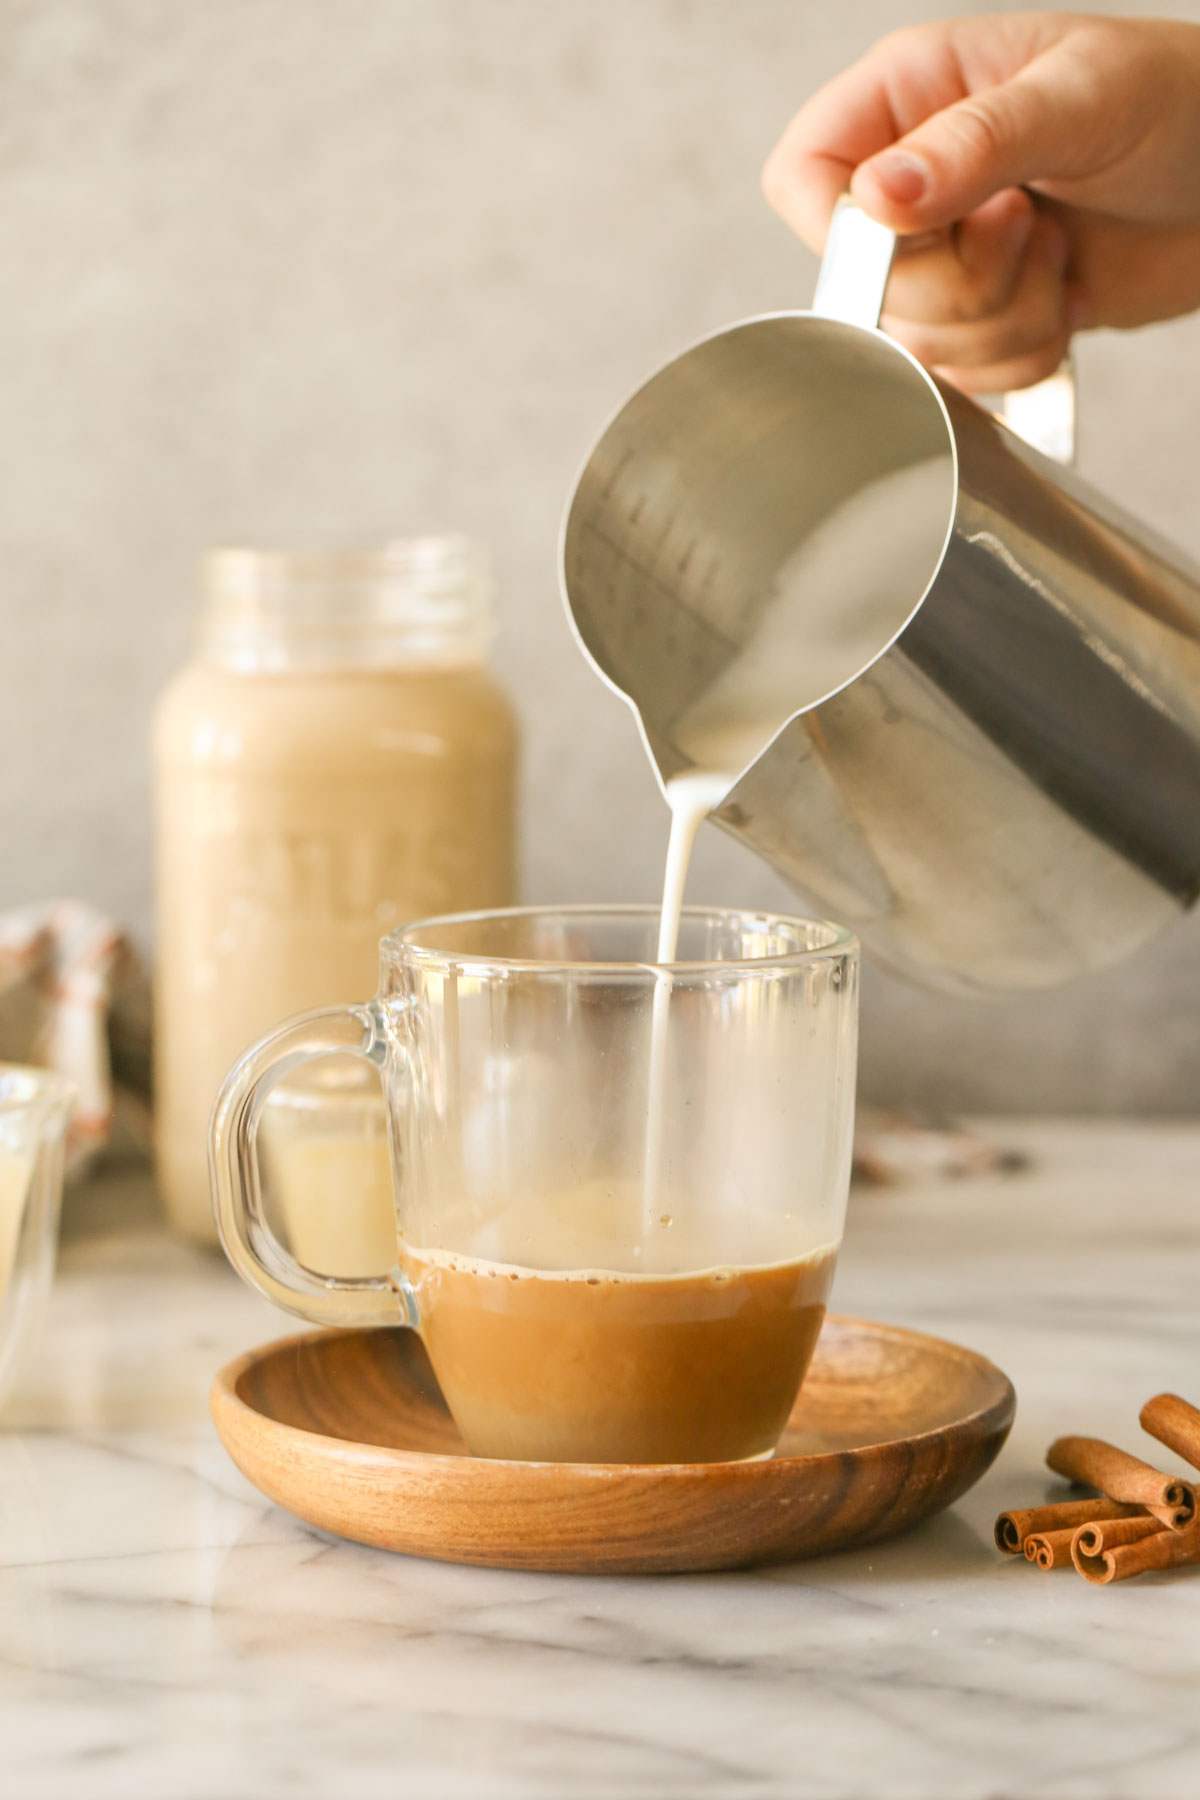 A hand pouring steamed milk from a stainless steel pitcher into a glass mug with espresso in it, sitting on a wood saucer with cinnamon sticks next to it, with a glass jar of Brown Sugar and Cinnamon Coffee Creamer in the background.